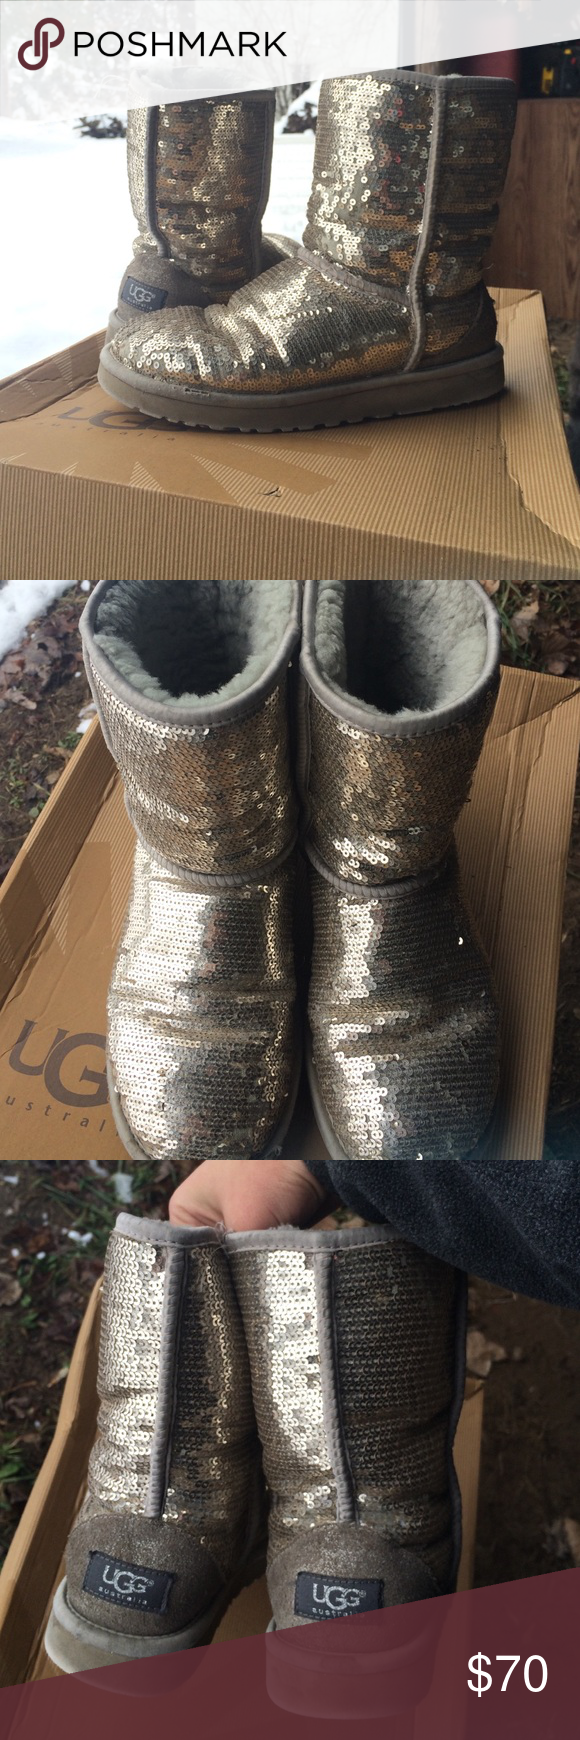 Sequenced uggs Dont like them as much as I thought I would used see pictures still in really good used condition thanks for looking! Box not included UGG Shoes Winter & Rain Boots